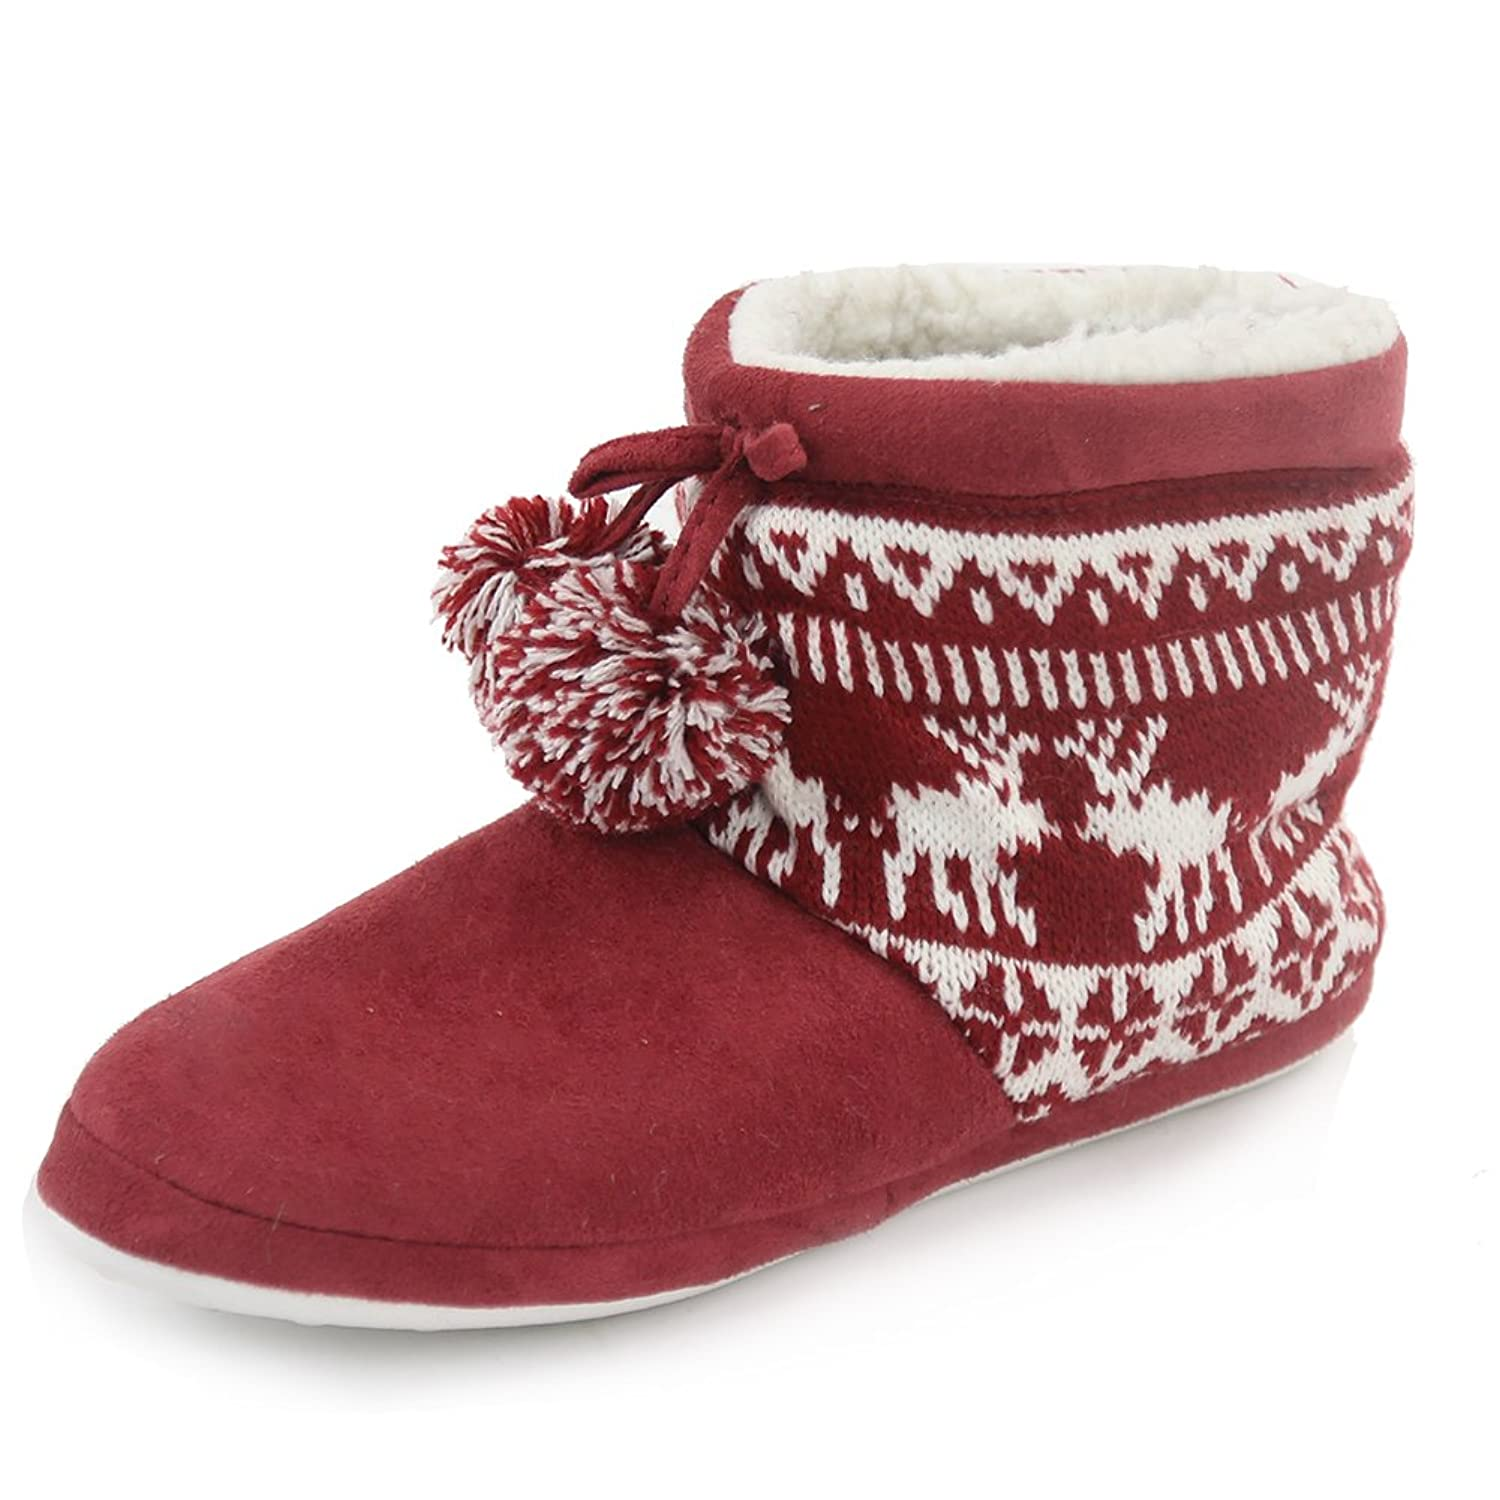 Faux Fur Indoor Slipper Boots